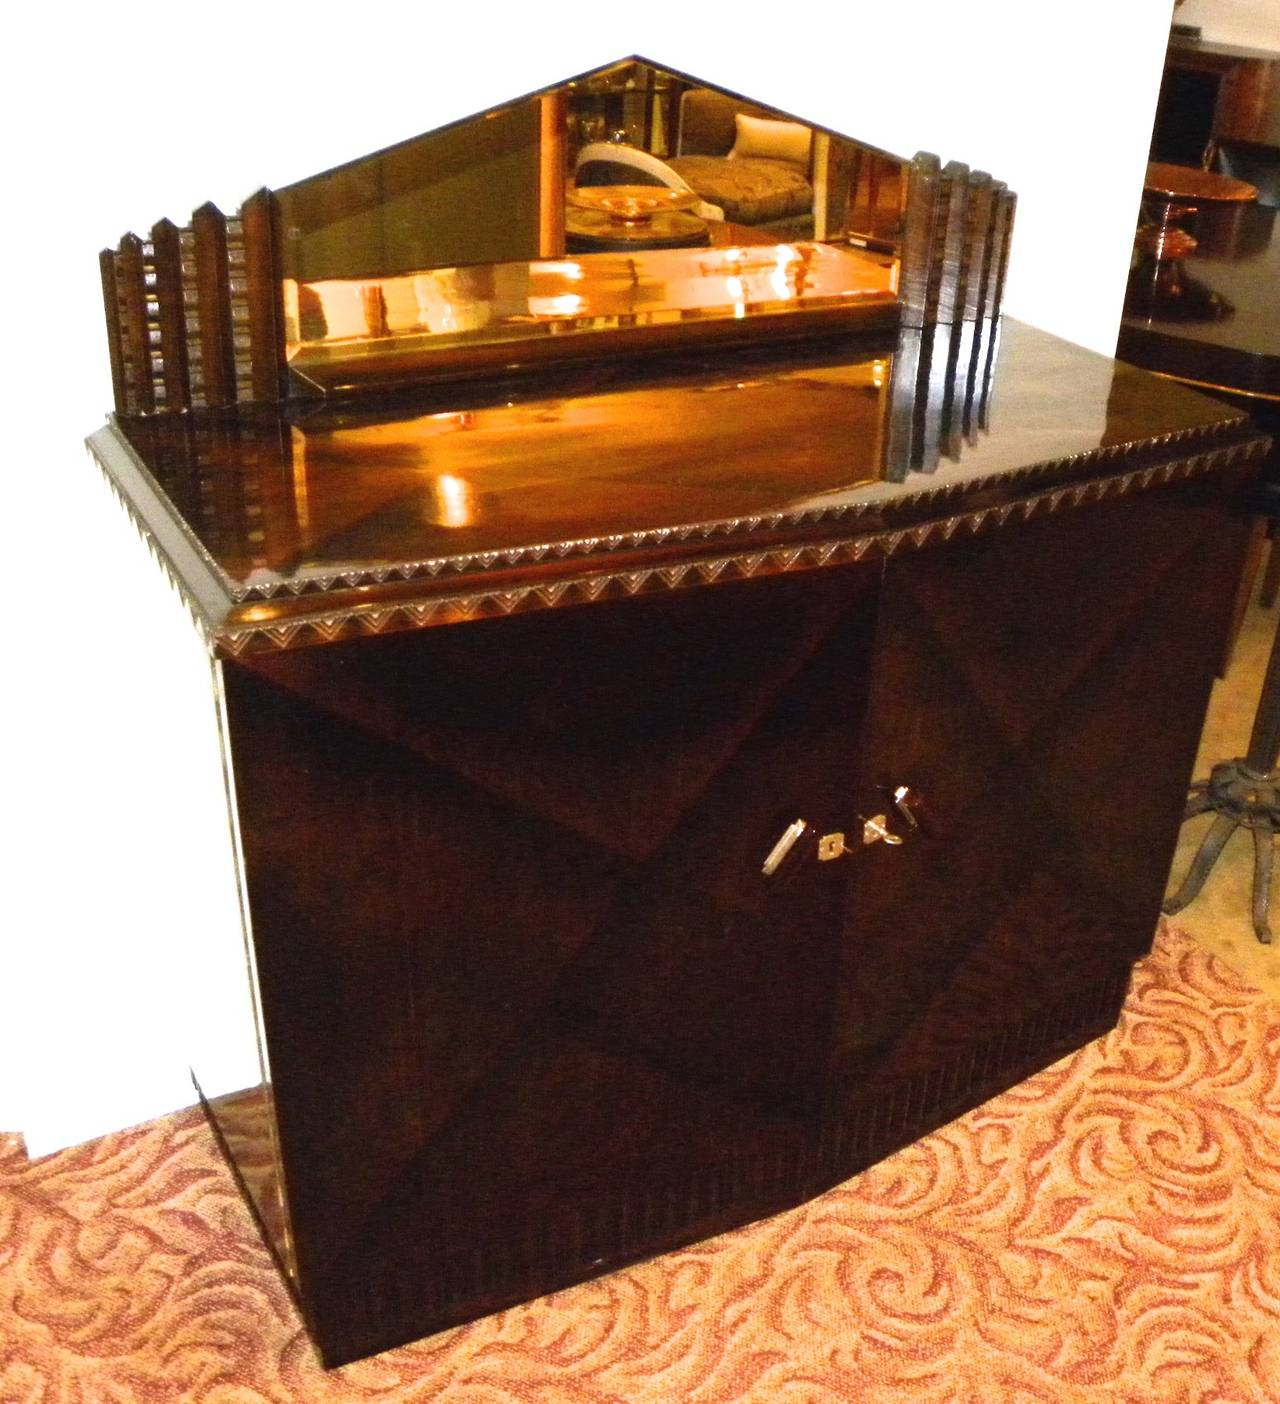 Stunning cabinet with V-shaped/ zigzag/ chevron pattern, also reflected in the beveled mirror that tops the buffet. Absolutely loaded with style, this is the type of work made popular by haute designers of the time such as Jean Dunand and Jean